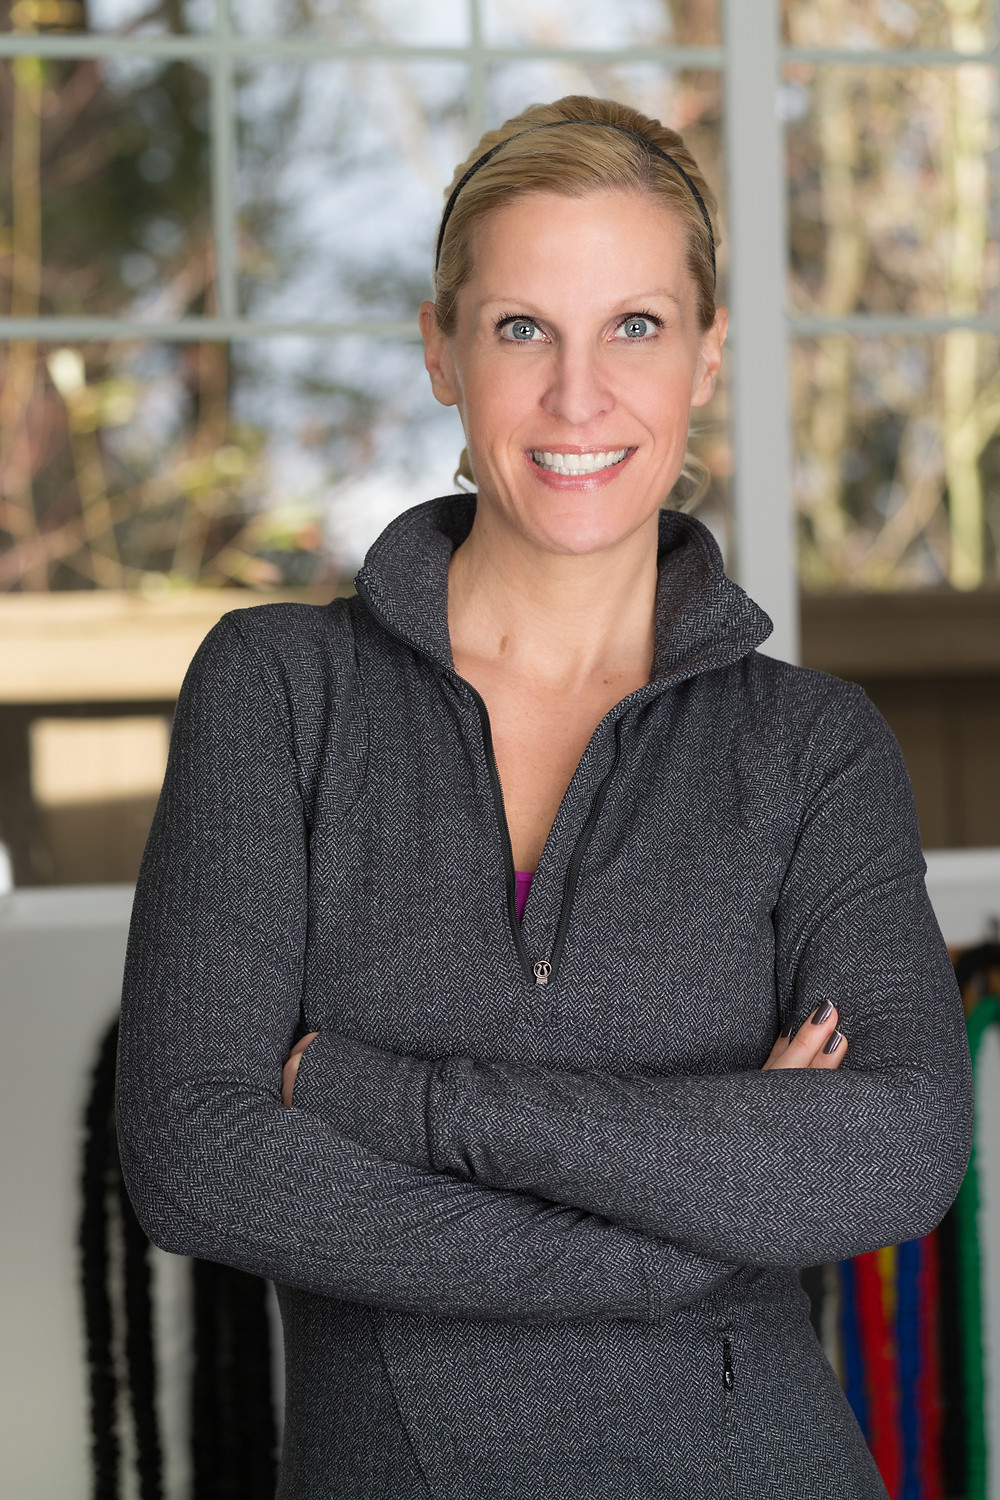 Mindy Garrett, owner of Mind + Body Elite